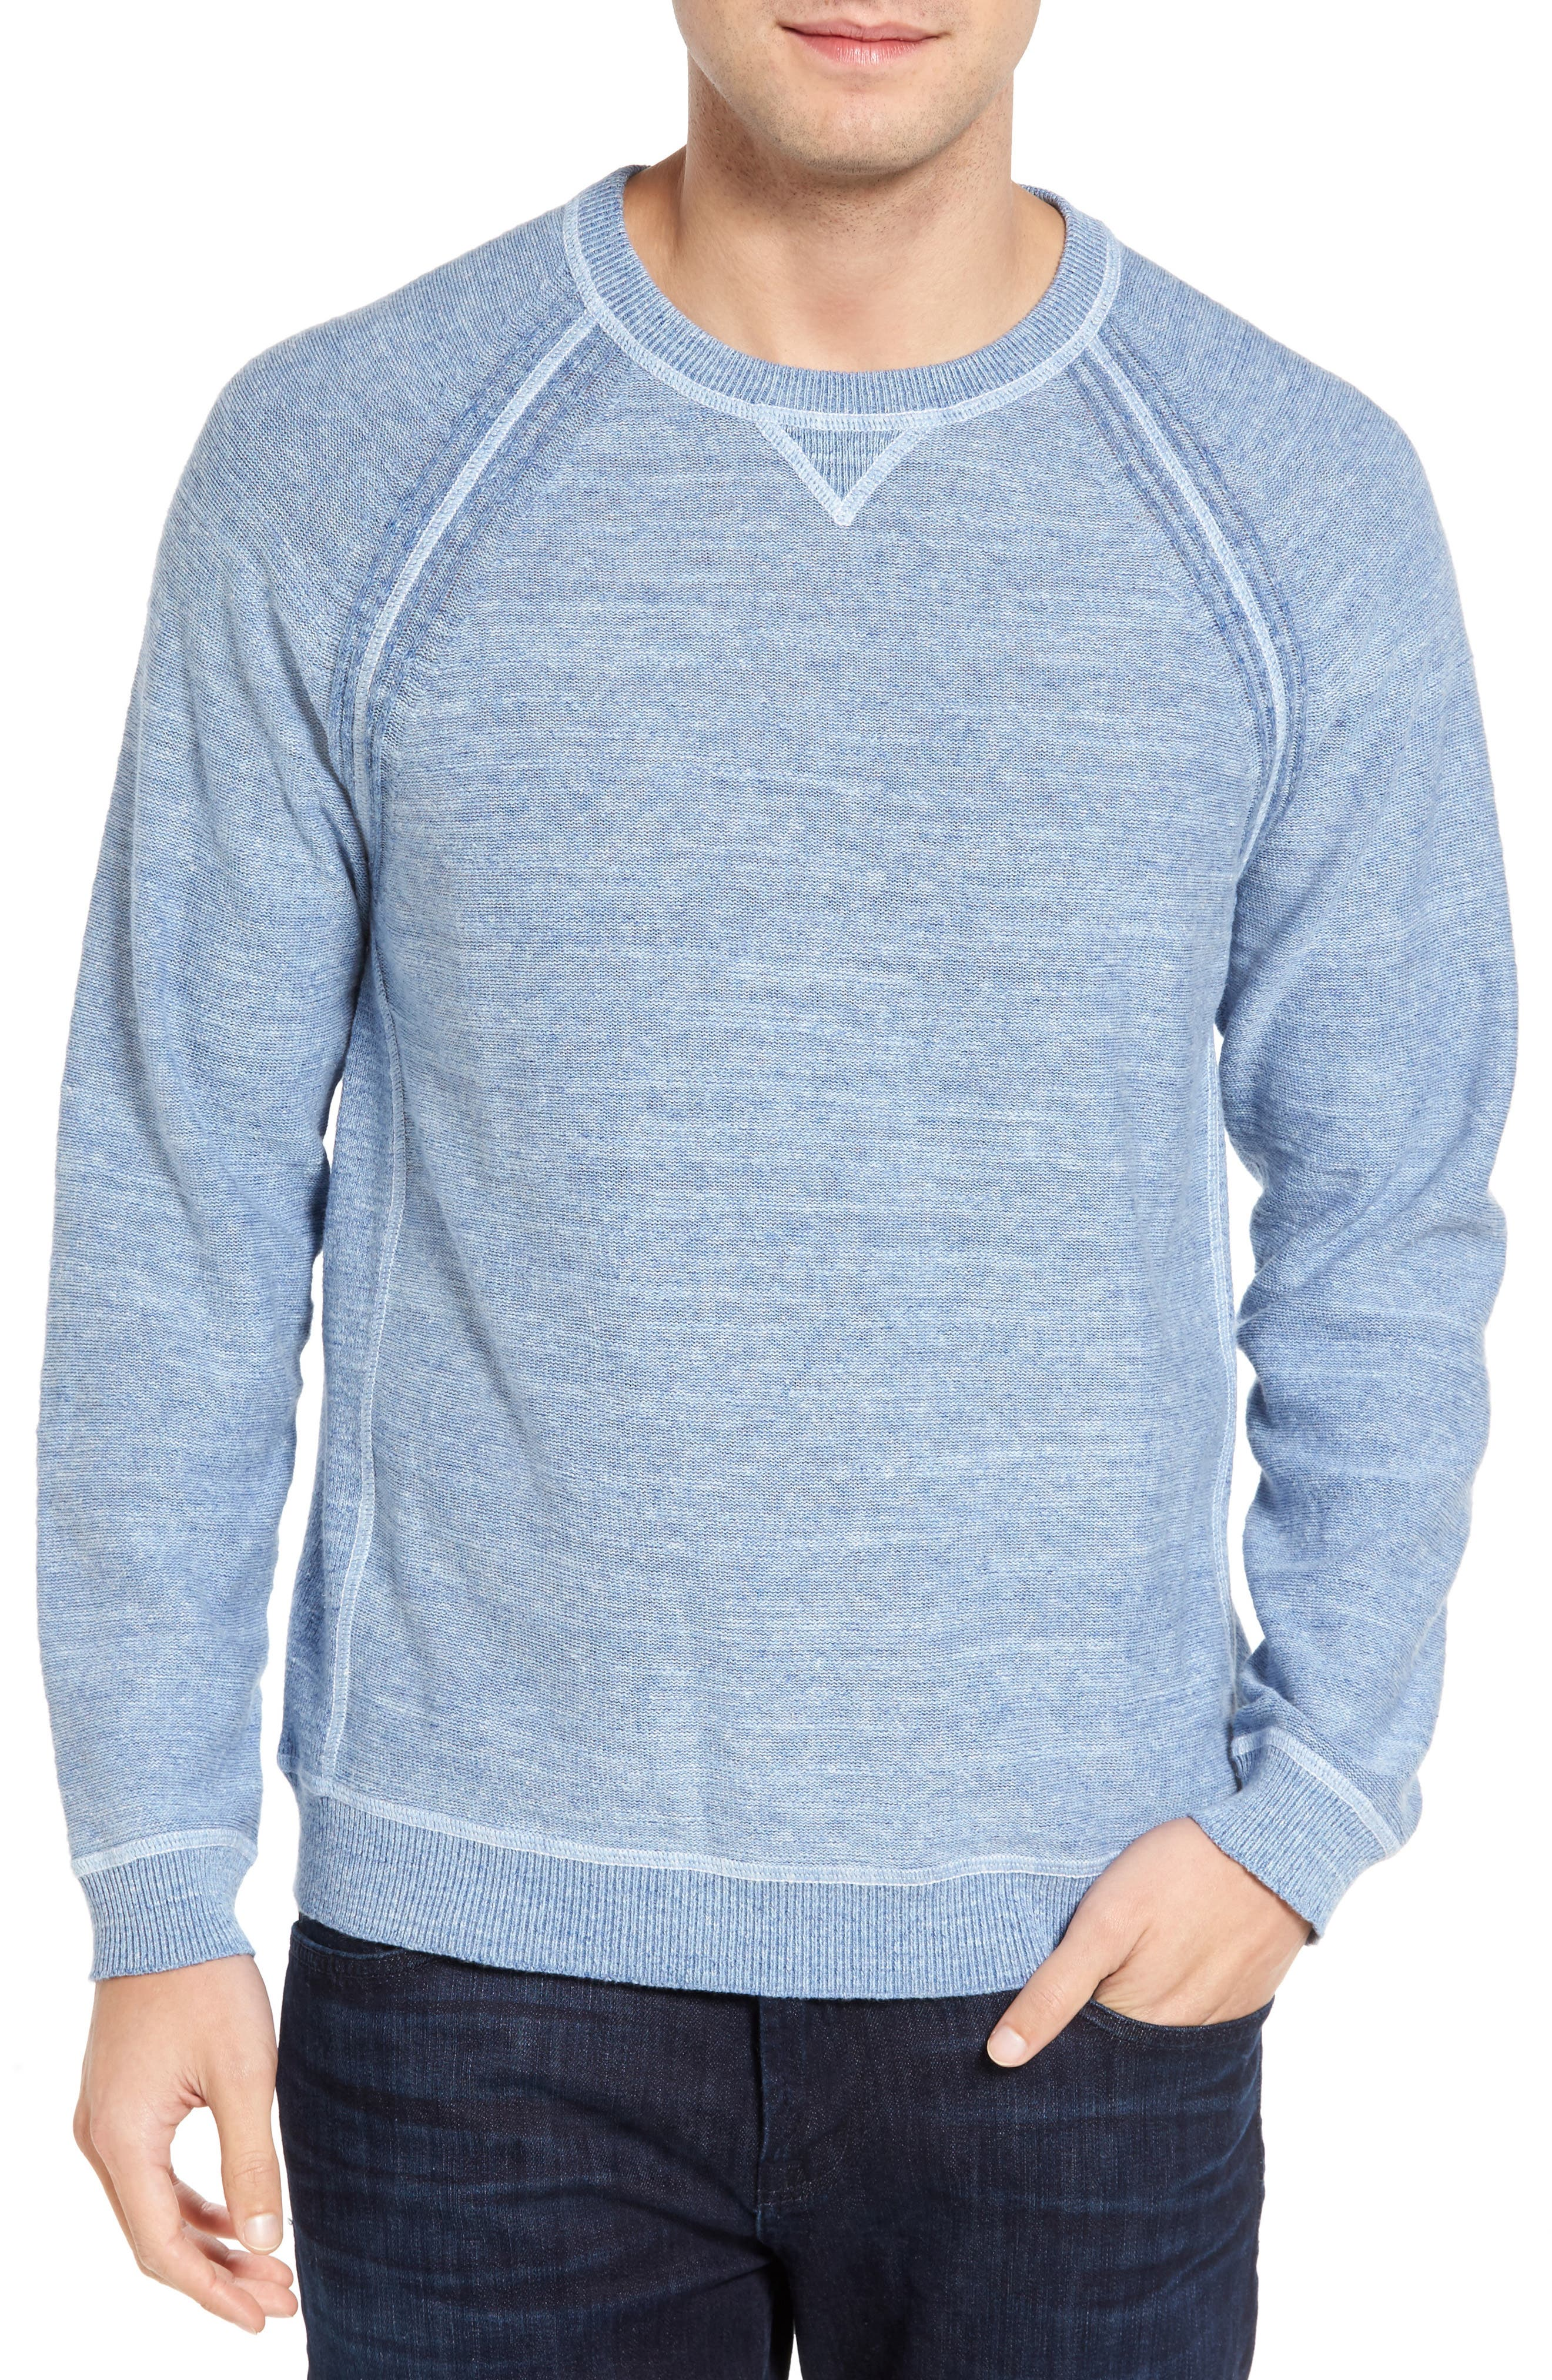 Sandy Bay Reversible Crewneck Sweater,                         Main,                         color, 100